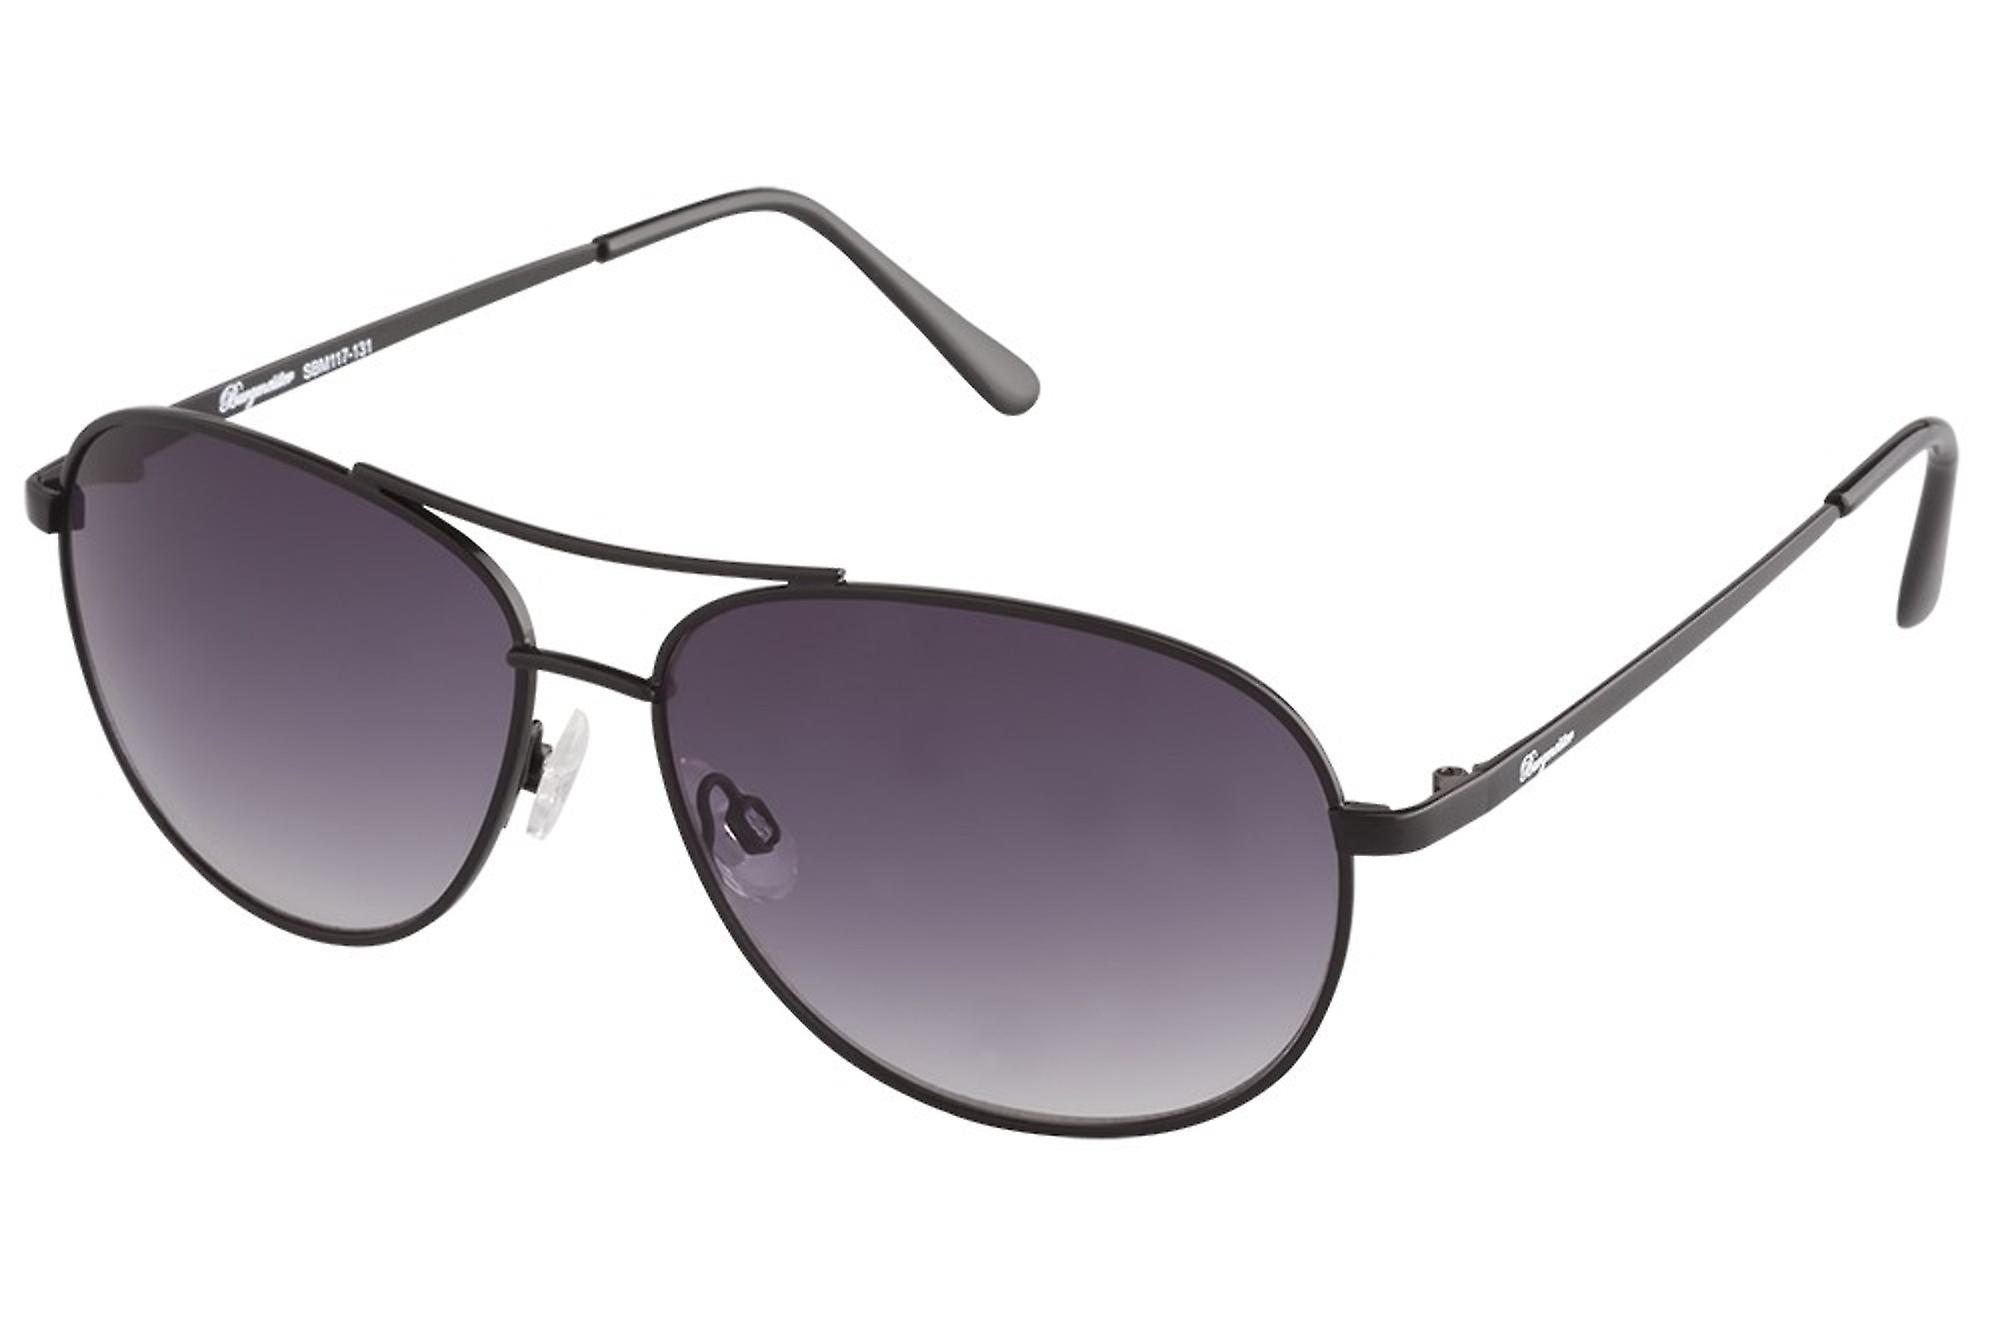 Classic sunglasses for men by Burgmeister with 100% UV protection | sturdy metal frame, high quality sunglasses case, microfiber glasses pouch and 2 year warranty | SBM117-131 Monaco